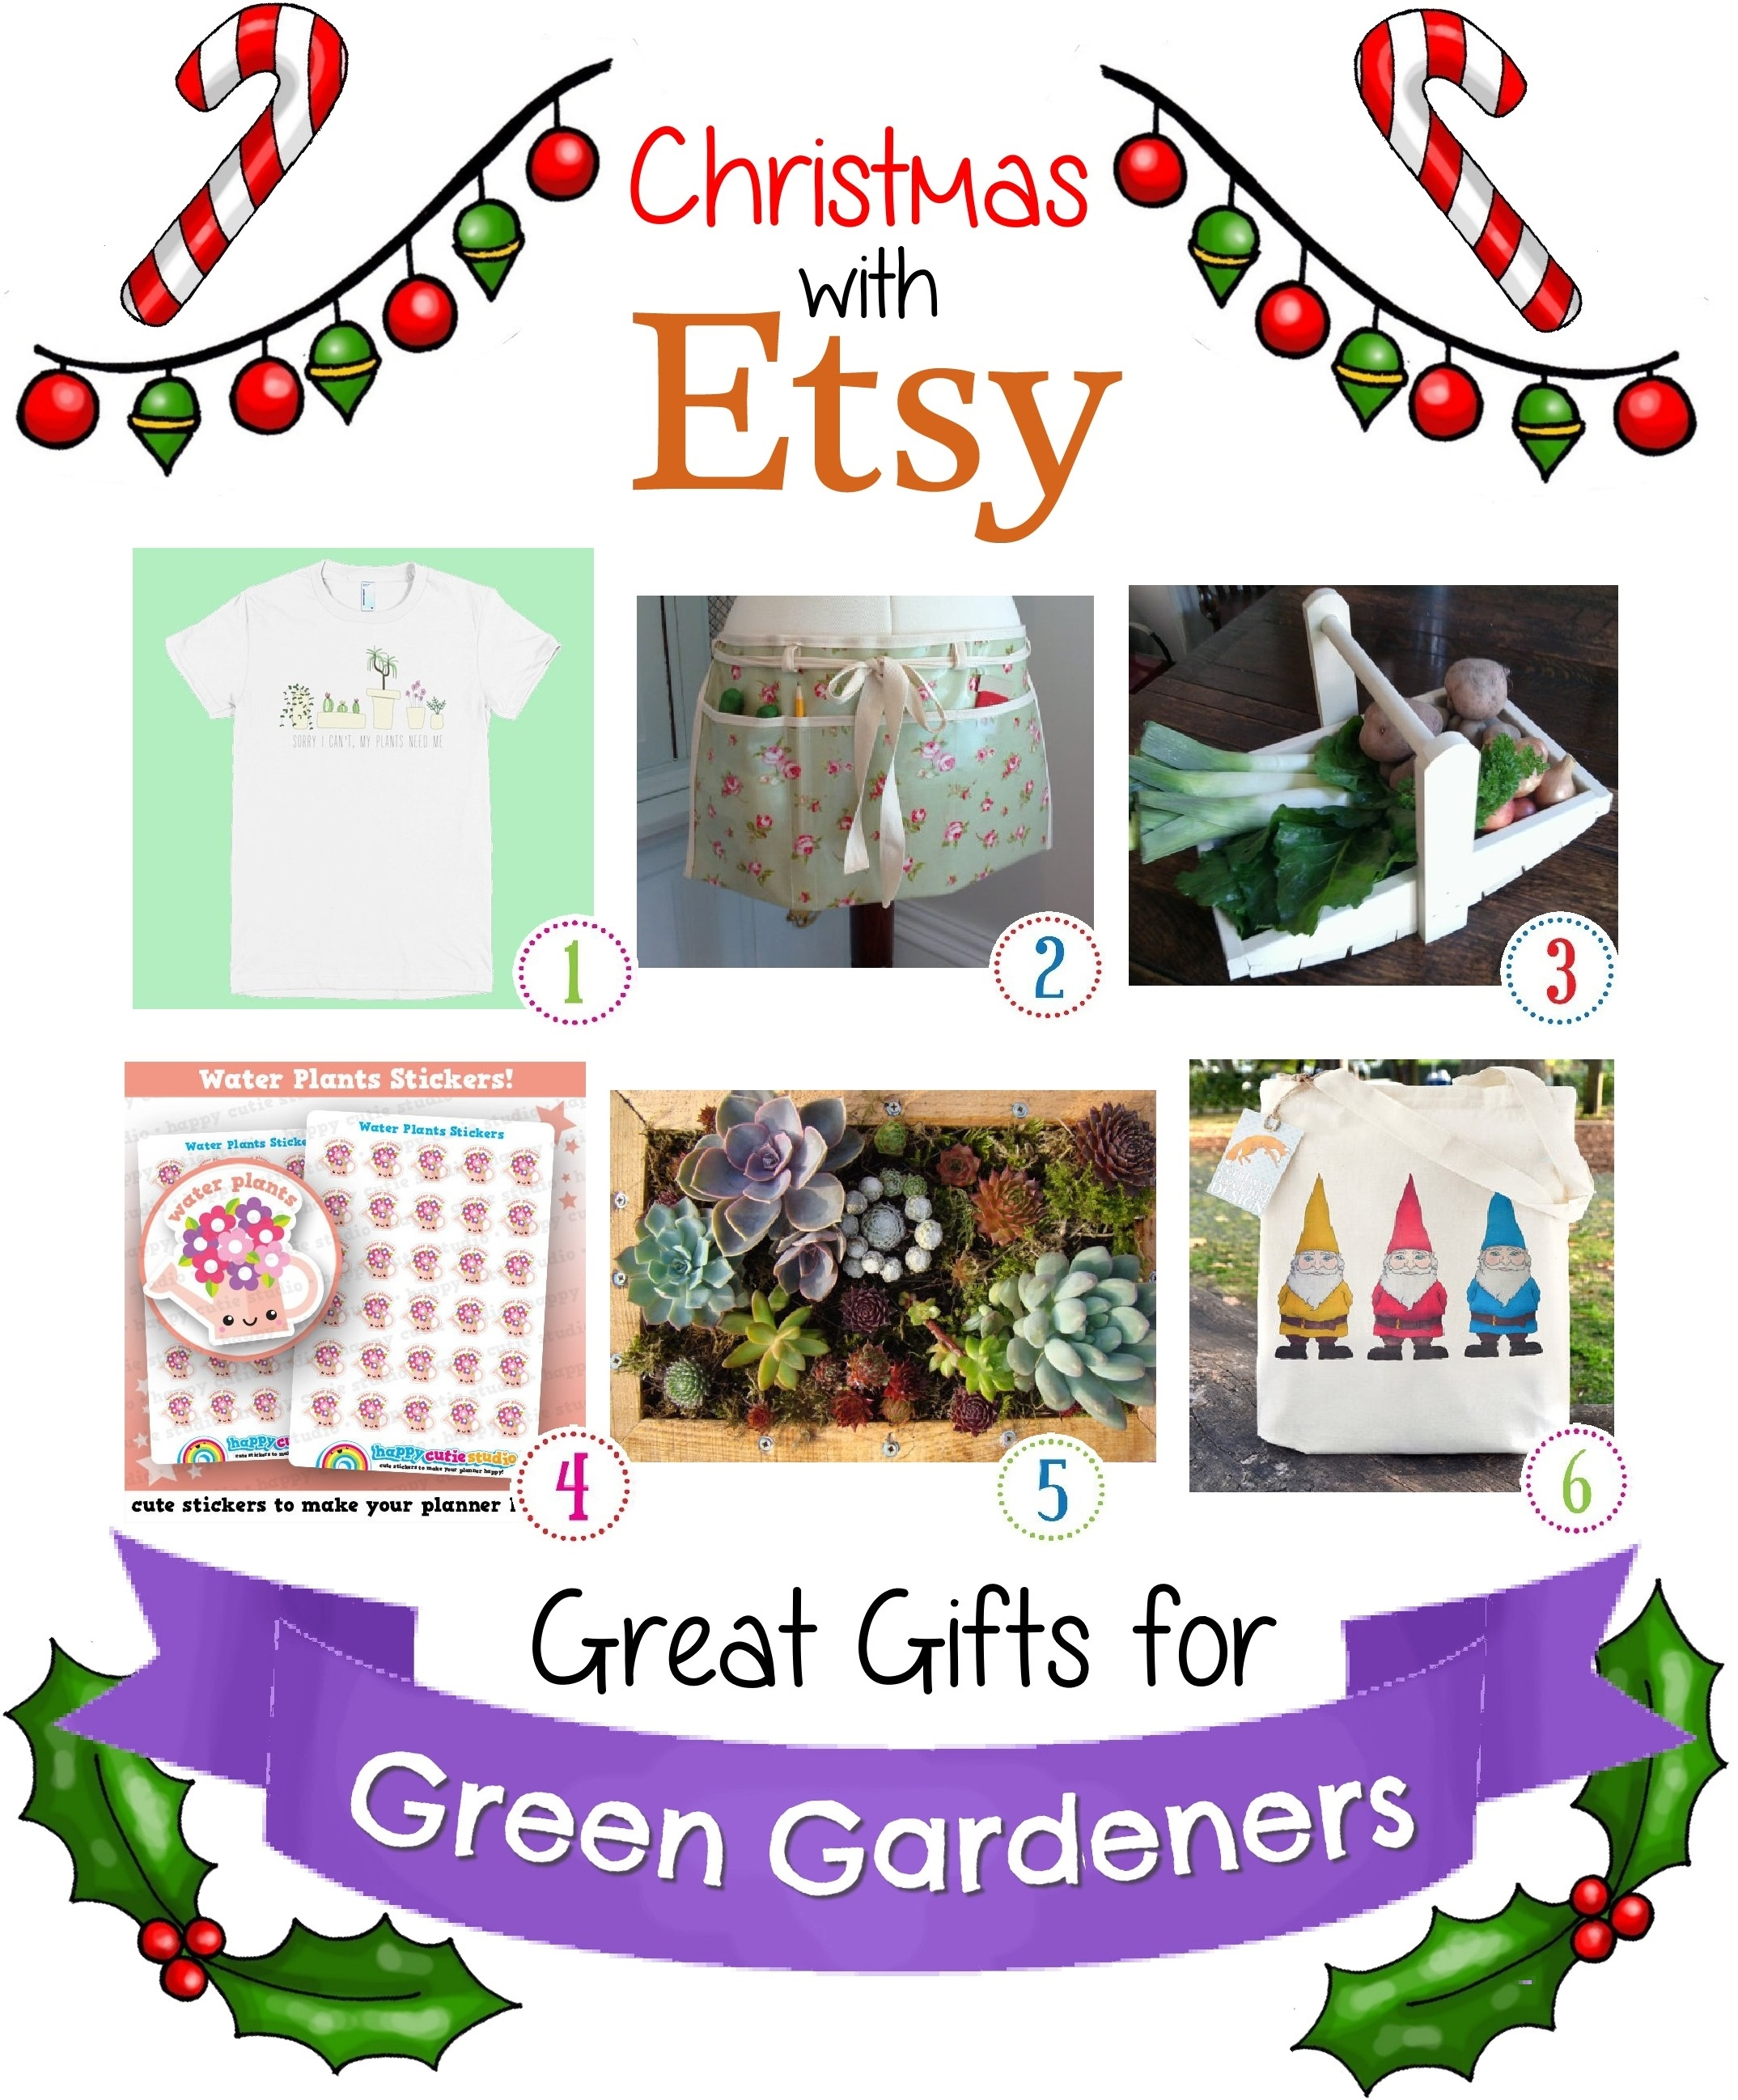 TAGS: affordable, art, blog, buy, Christmas, craft, December, November, Etsy, Etsy sellers, gift, guide, handmade, novelty, personalised, personalized, presents, seasonal, Shiny, Shiny Creations, shop, shopping, themed, unique, video, vlog, what to, Youtube, hobby, job, occupation, garden, gardeners, plants, flowers, green thumb, green,